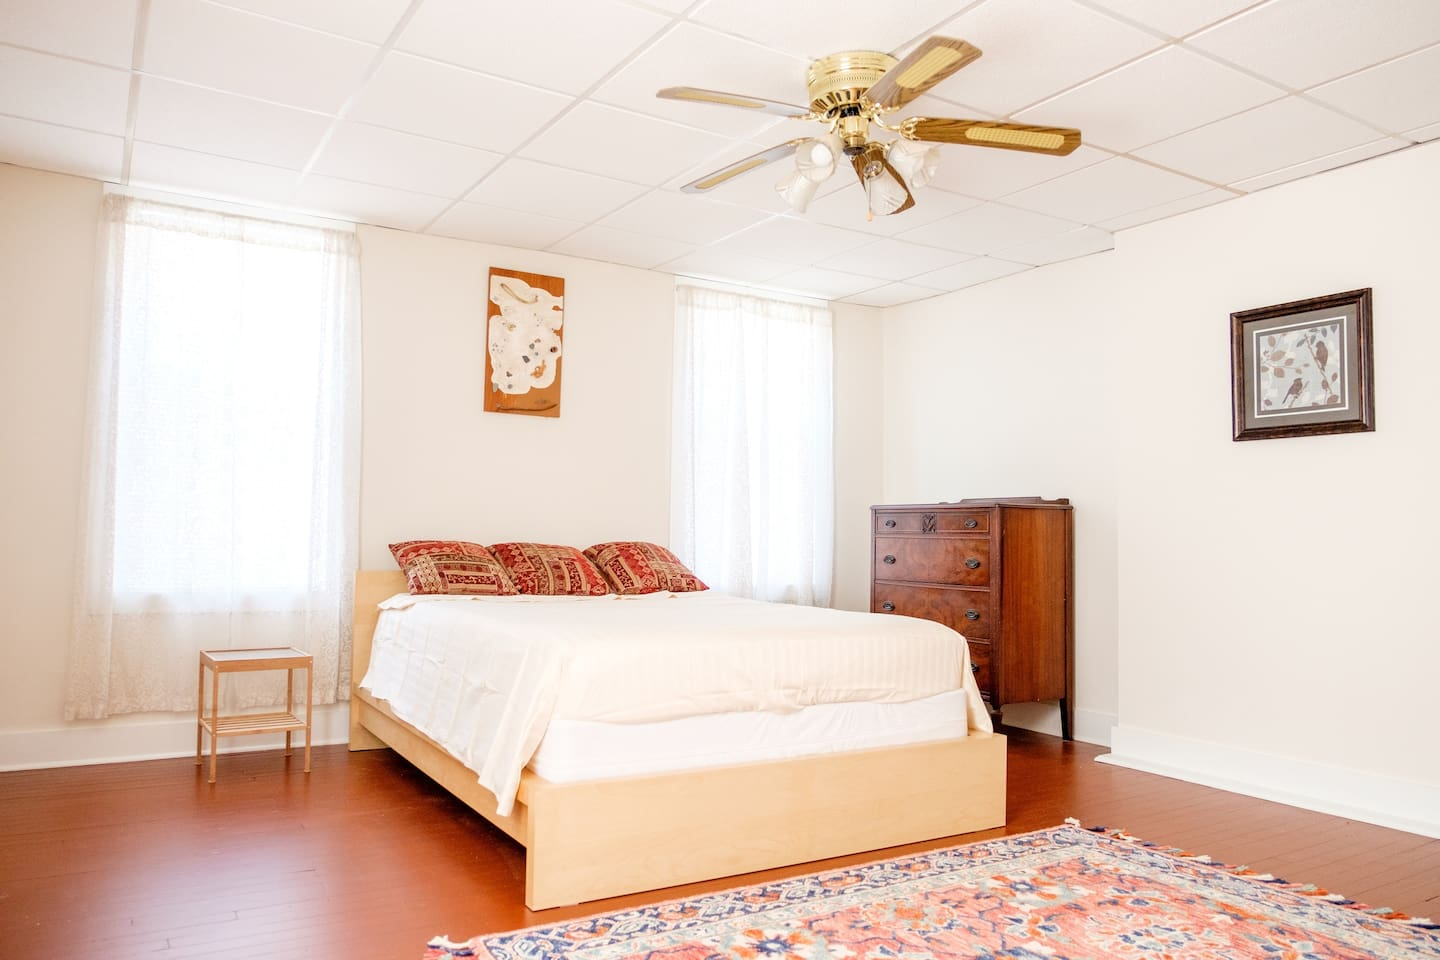 Beautiful bedroom with queen sized bed and comfort mattress.  This room is spacious with an office set-up, dresser, and closet for storing travel items.